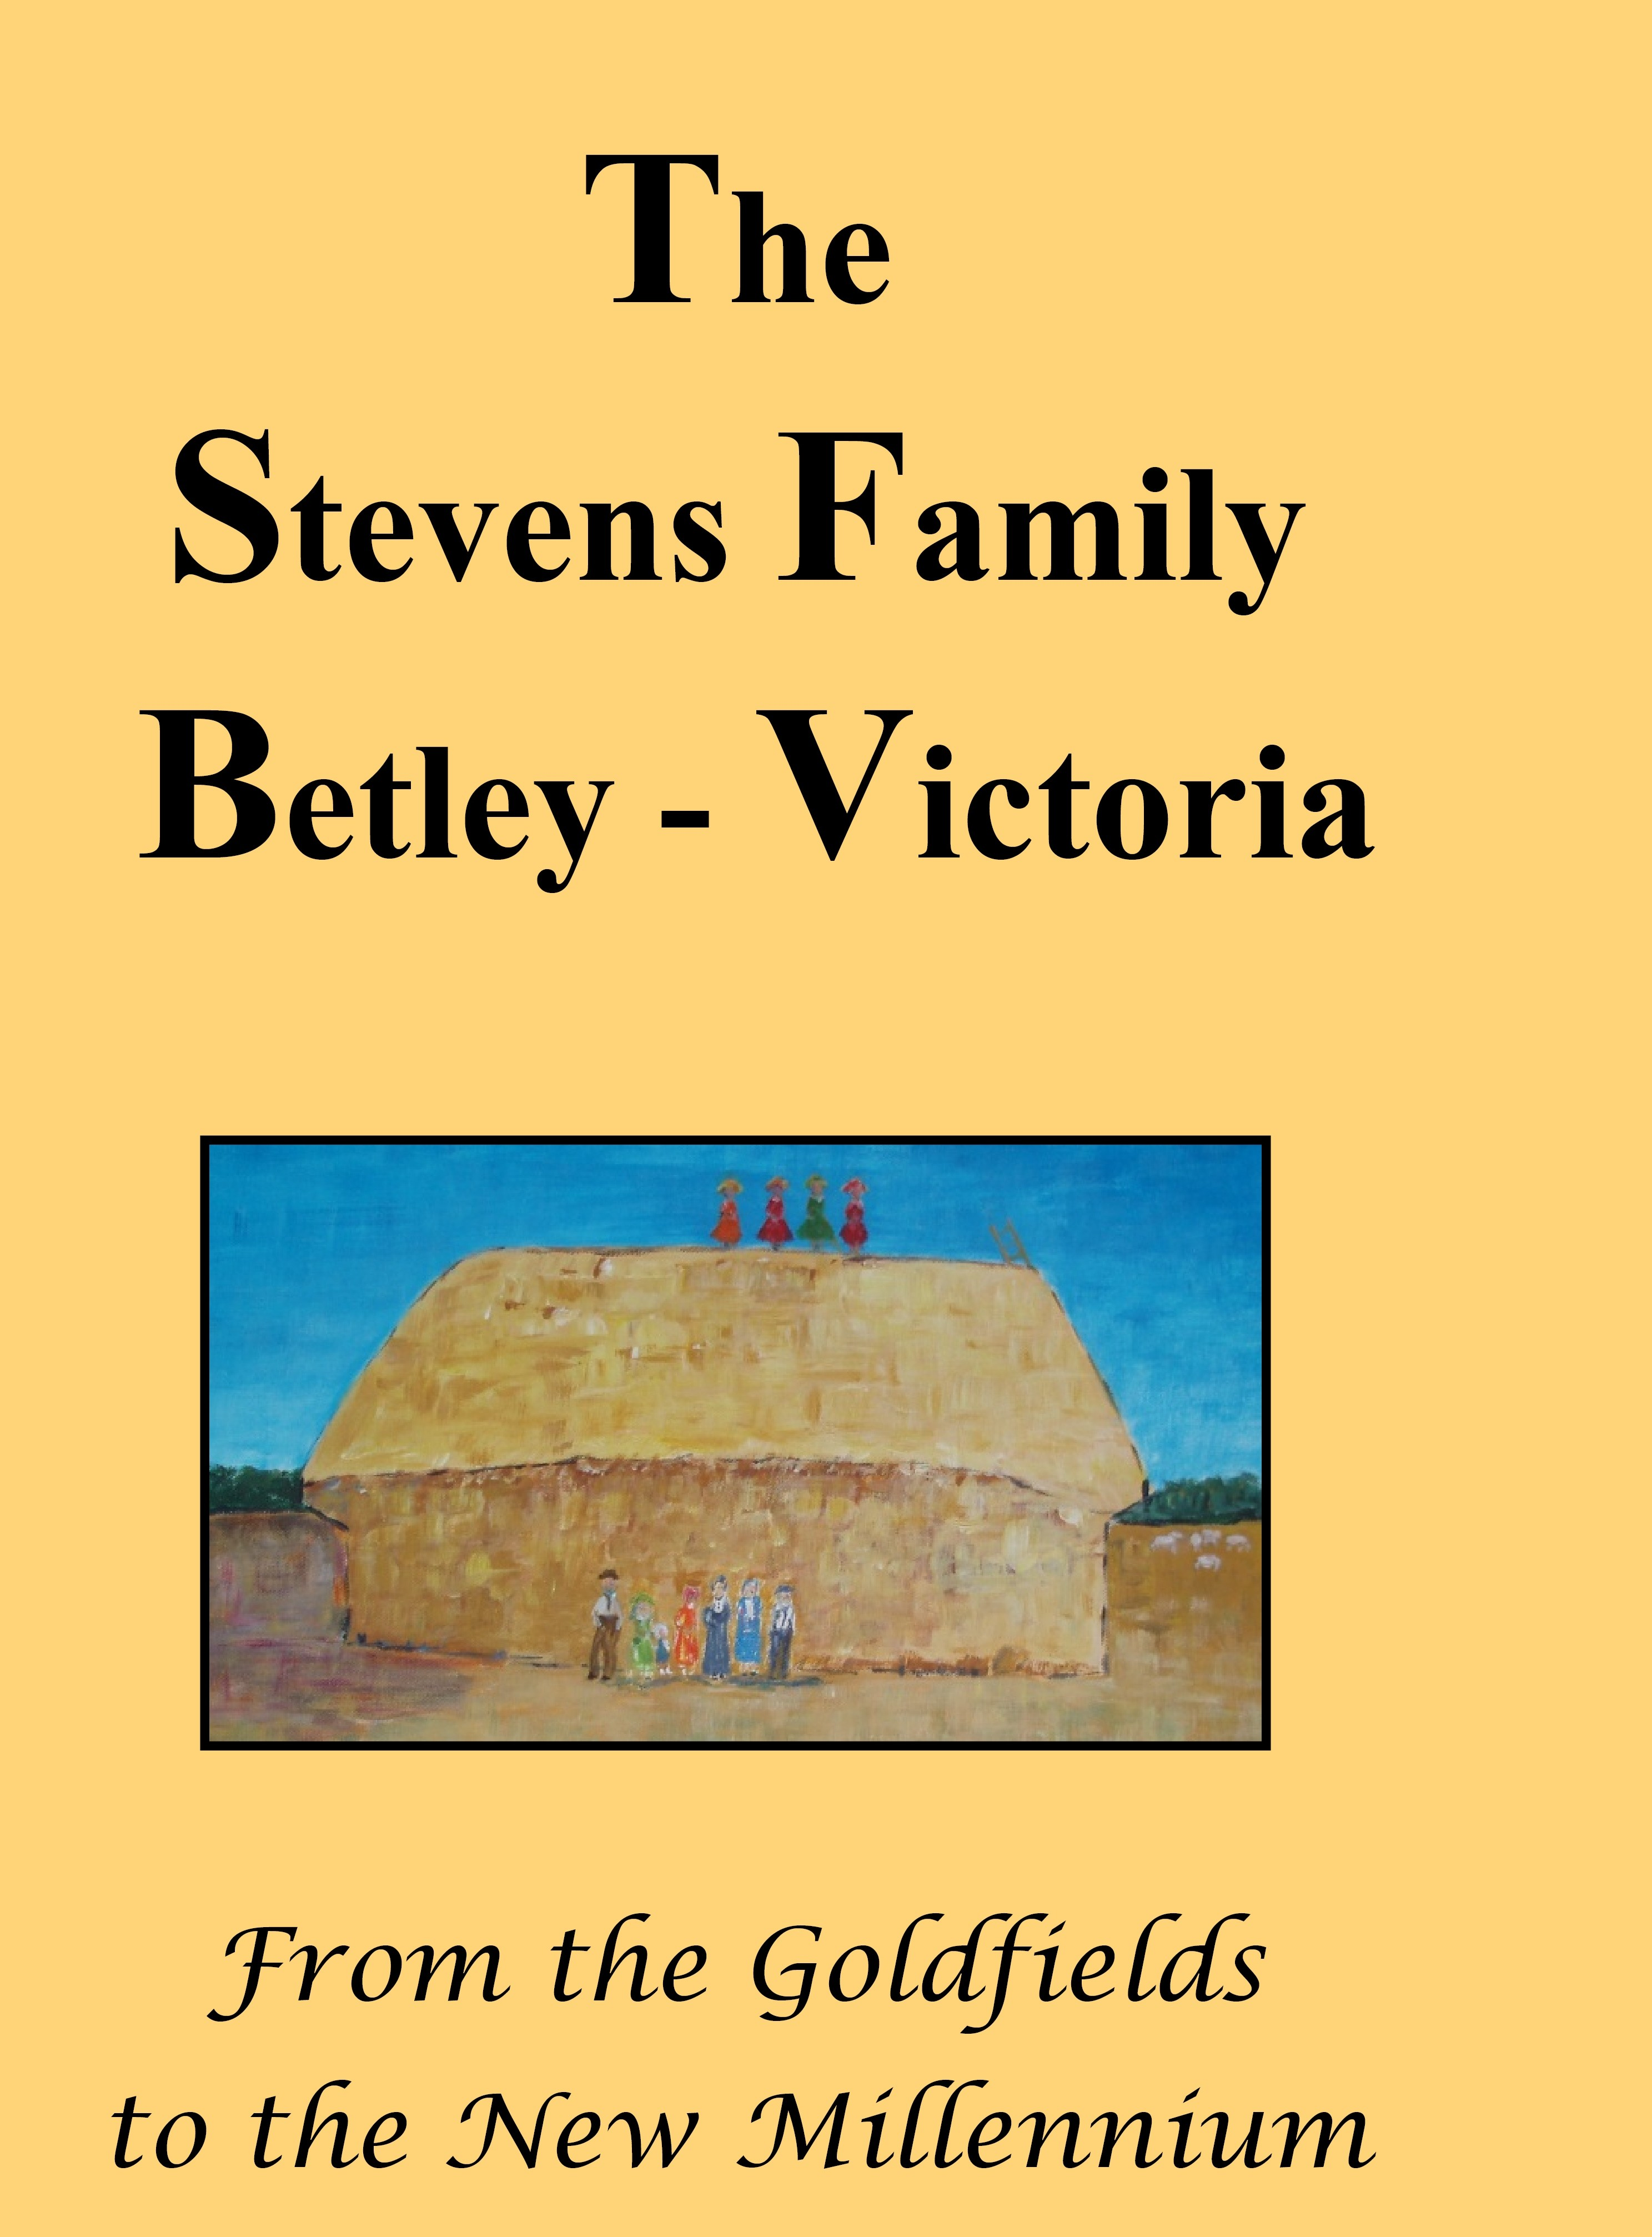 The Stevens Family Betley - Victoria